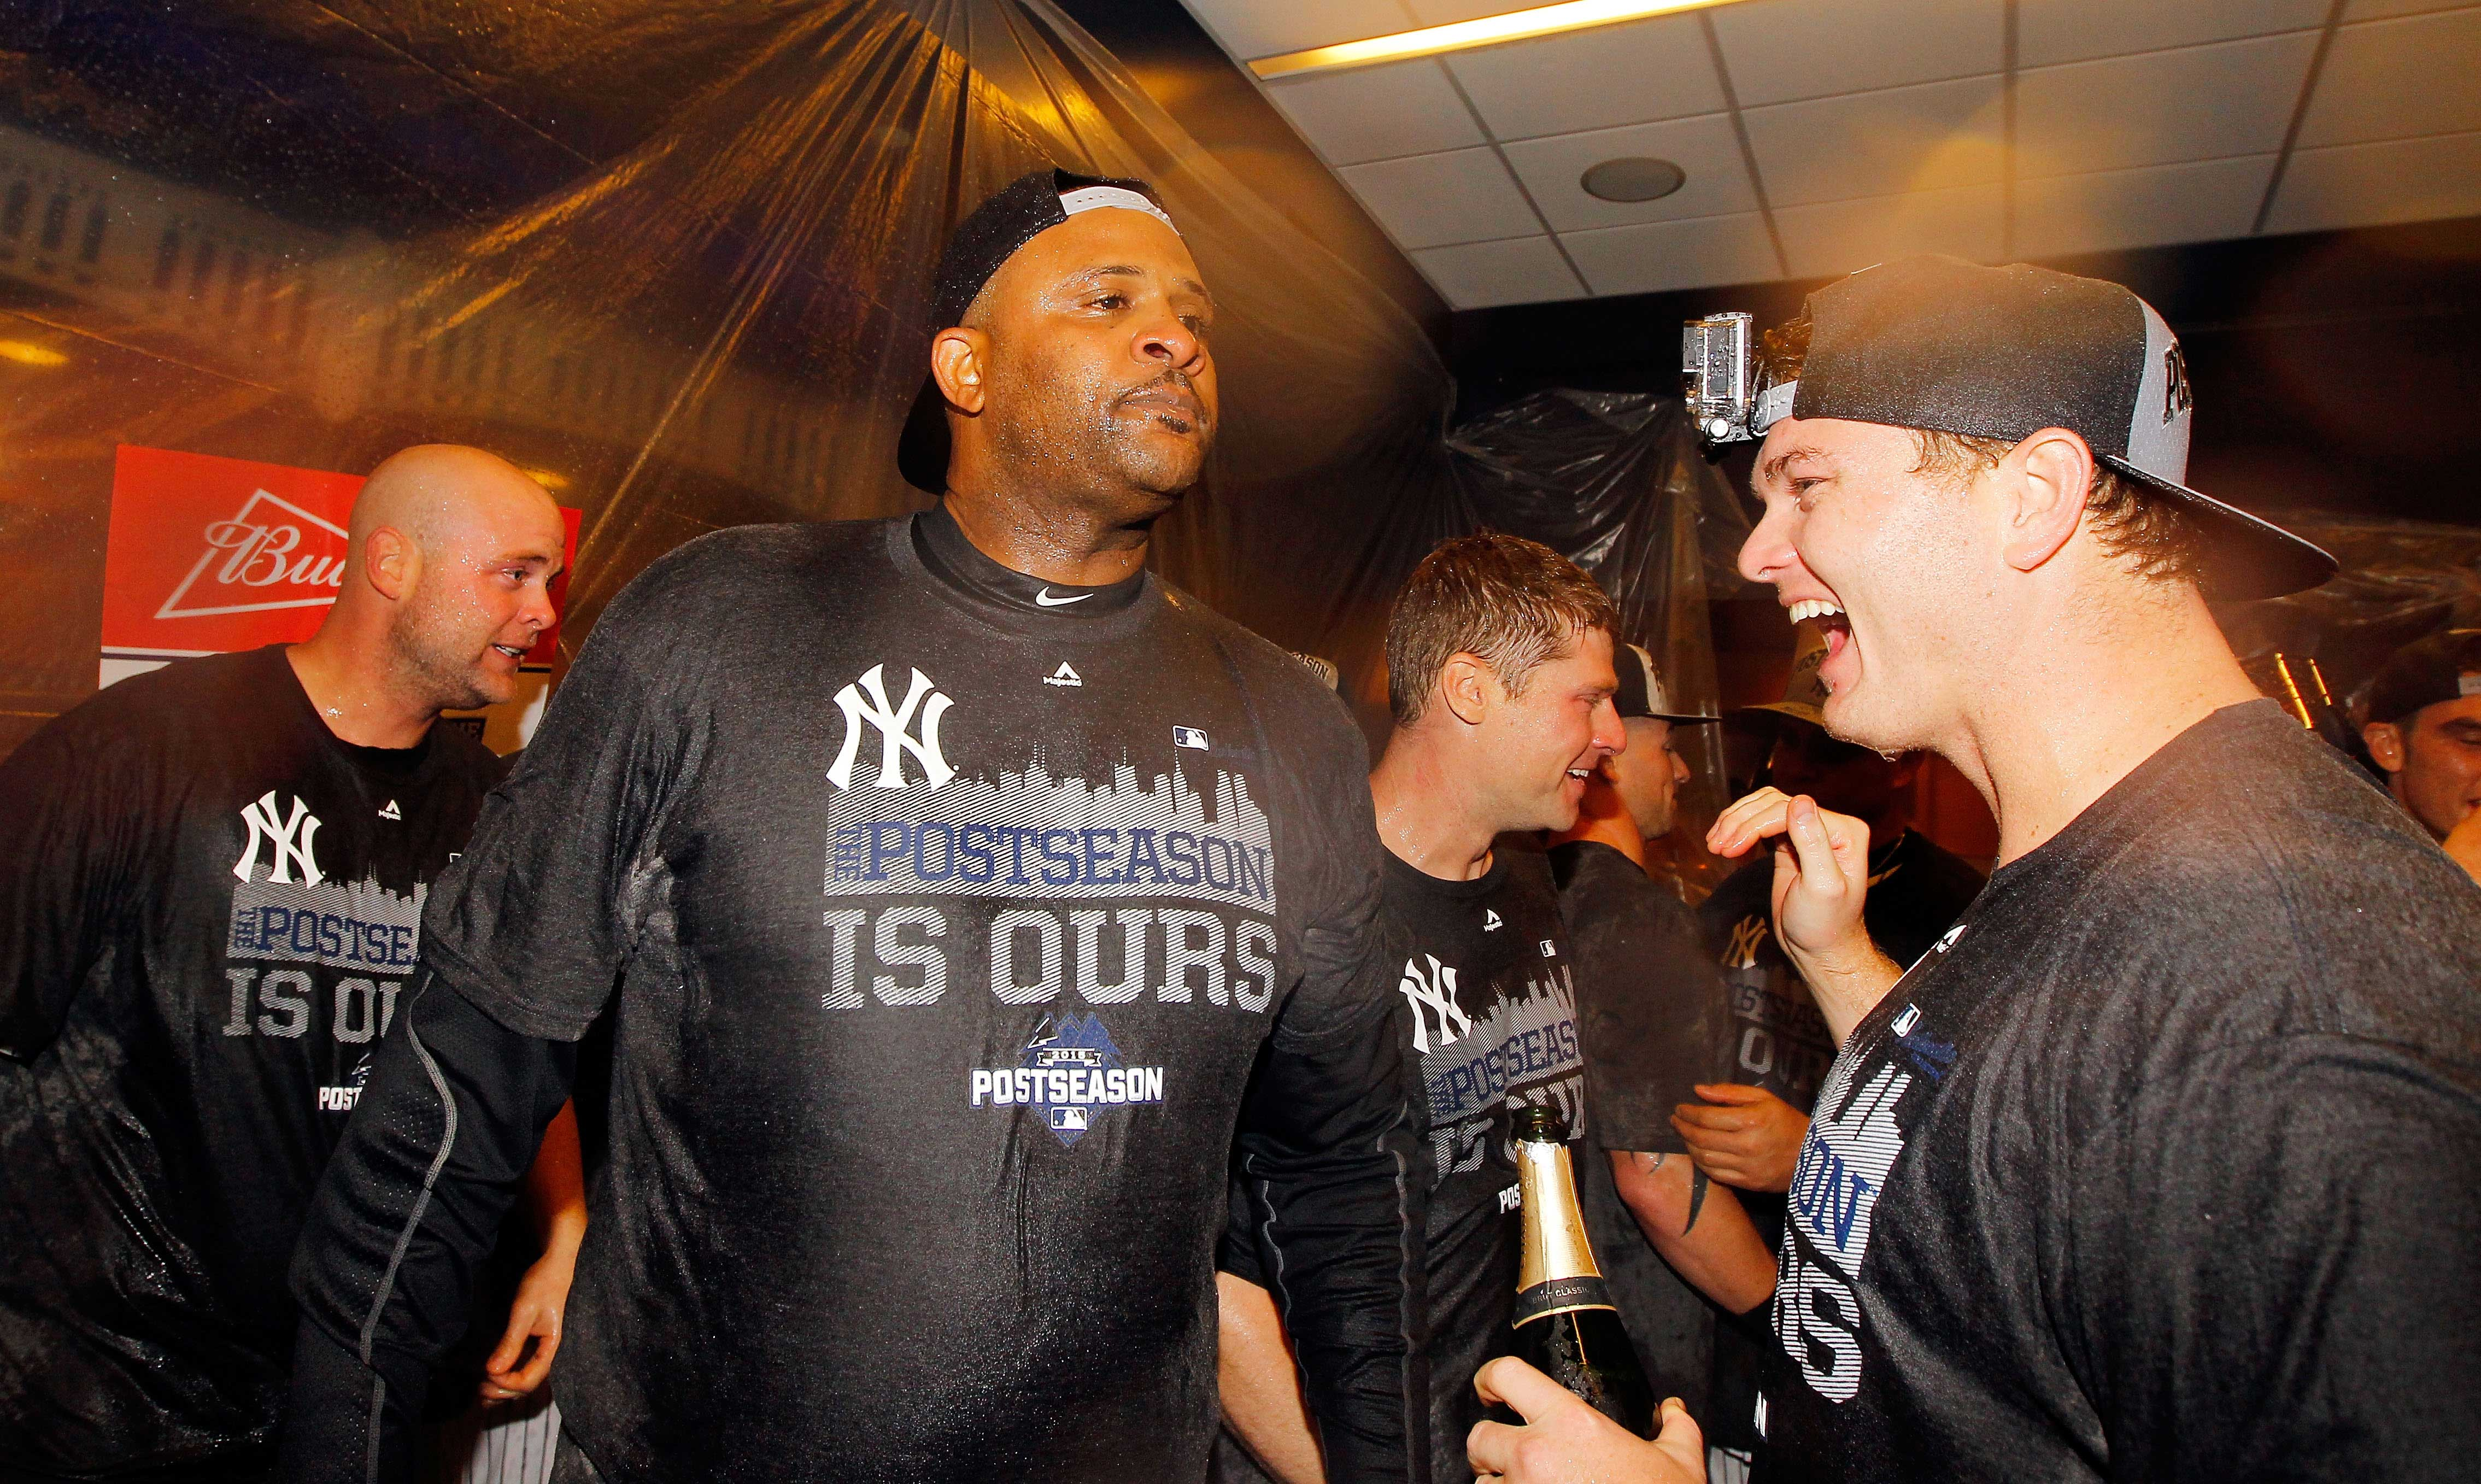 CC Sabathia celebrating the New York Yankees 2015 wildcard victory days before he announced he was checking himself into rehab.